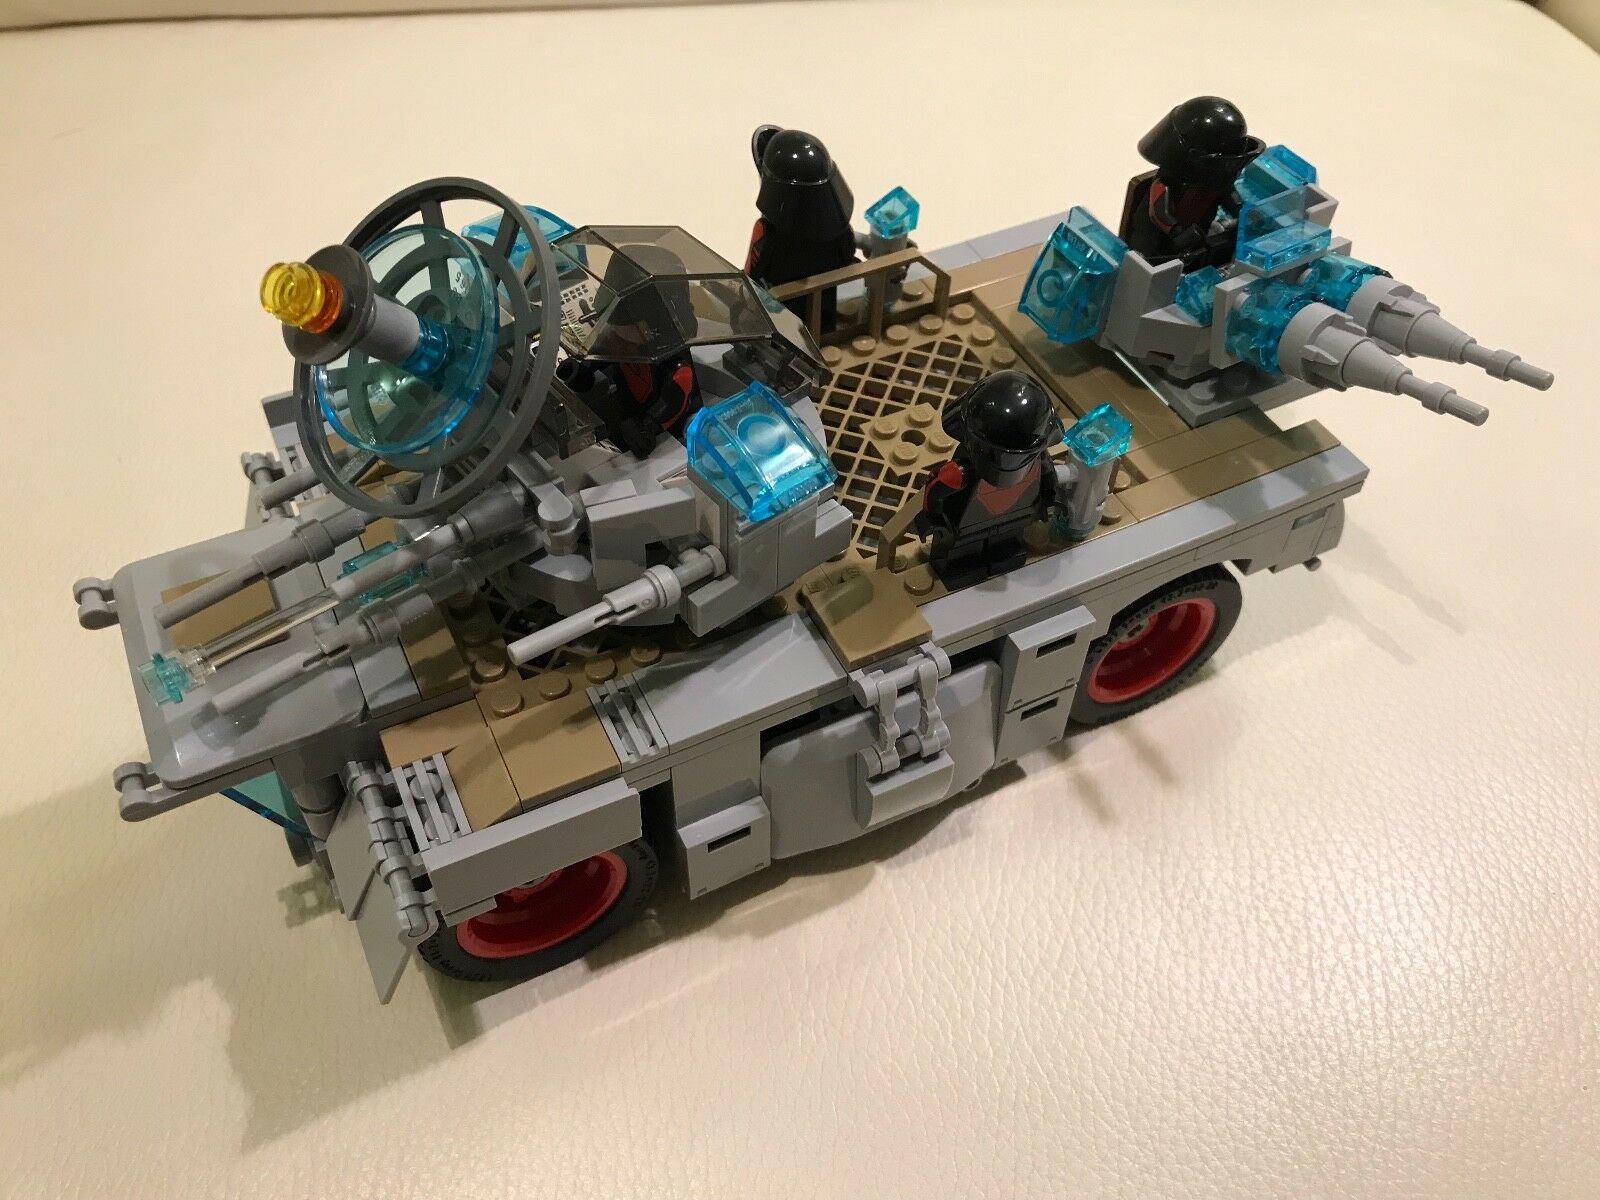 LEGO parts only - FO TANK + 4 FO TROOPERS - my design all as in the picture